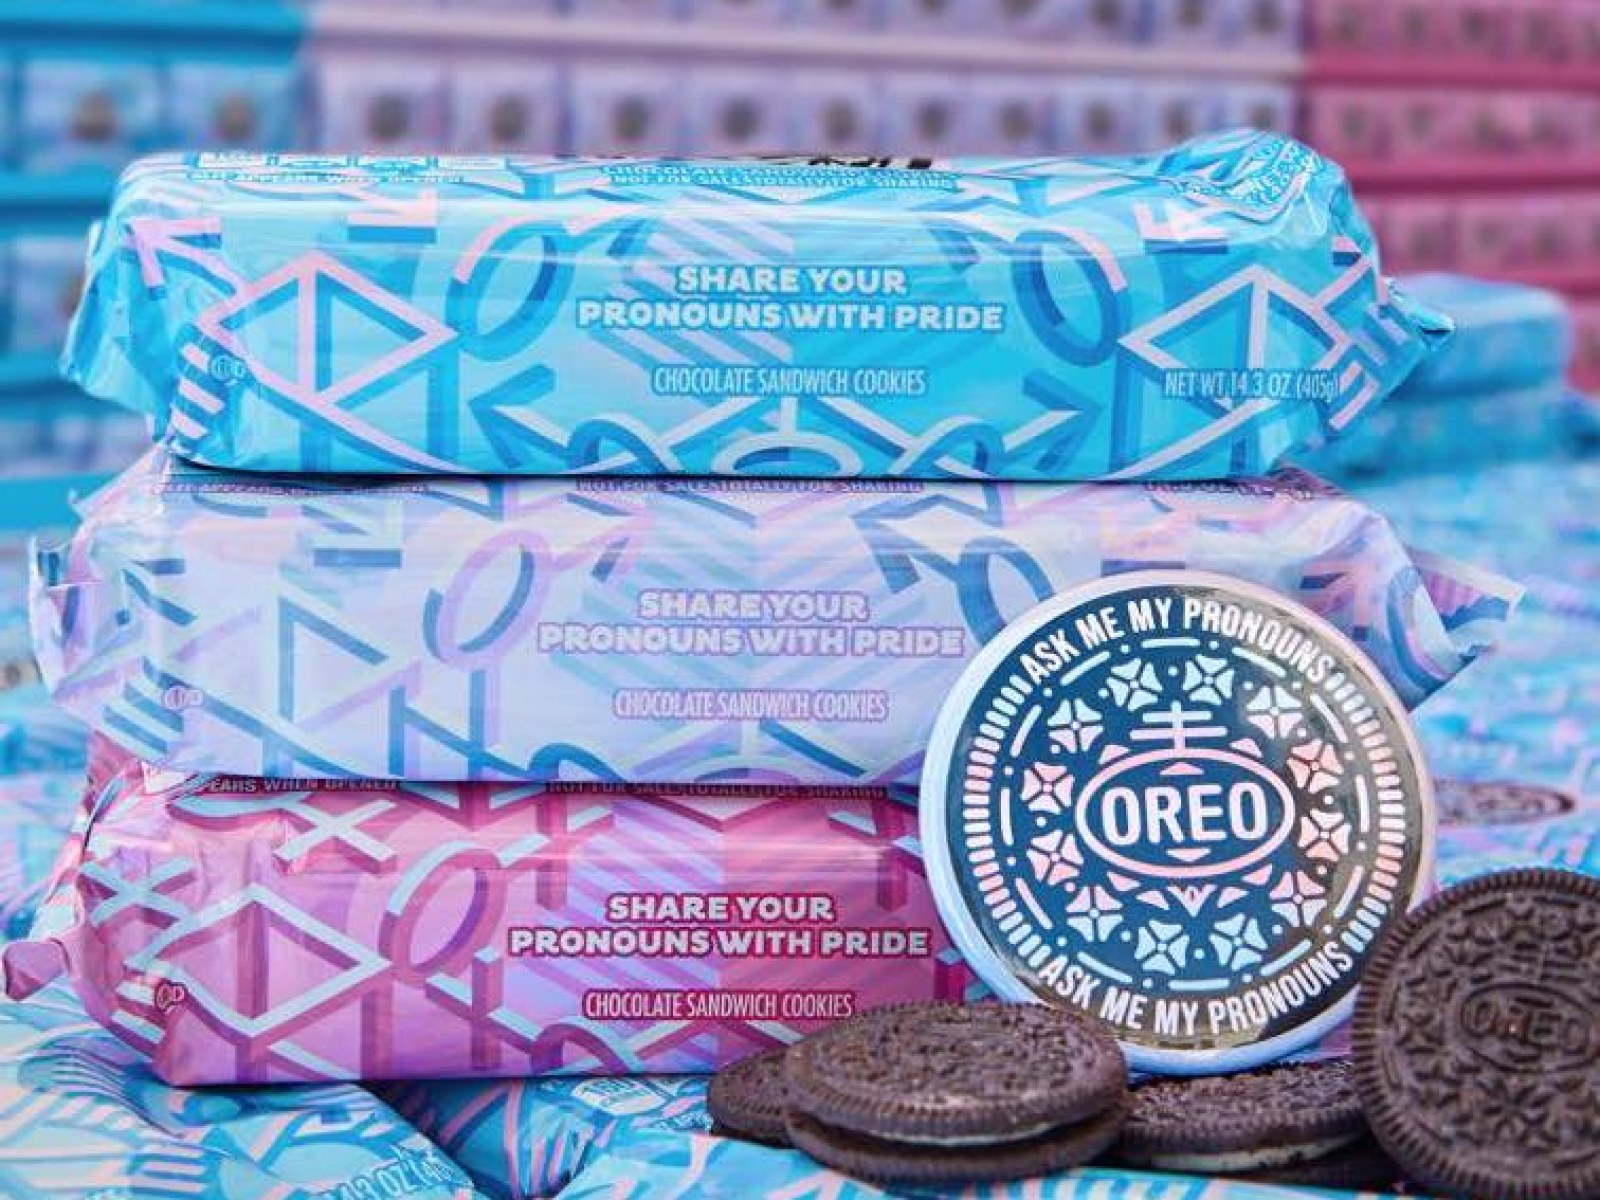 Conservatives Attack Wrong Group for Oreo's LGBT-Inclusive 'Pronoun Packs'